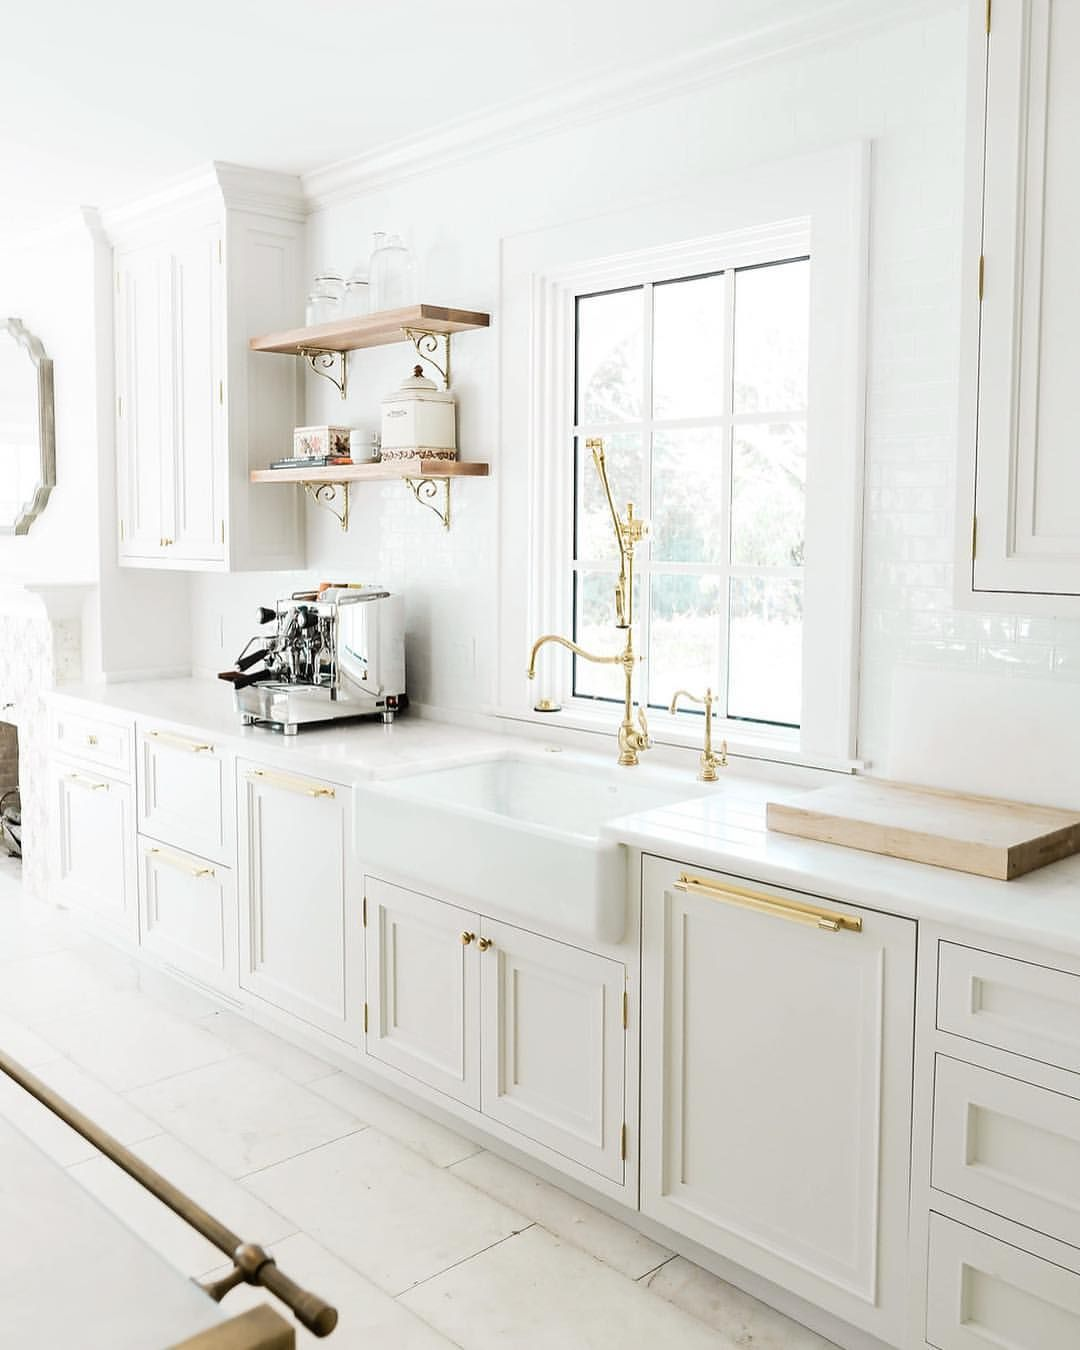 Small Galley Kitchen Ideas Design Inspiration: White Gold And Limestone In This Stunning Kitchen